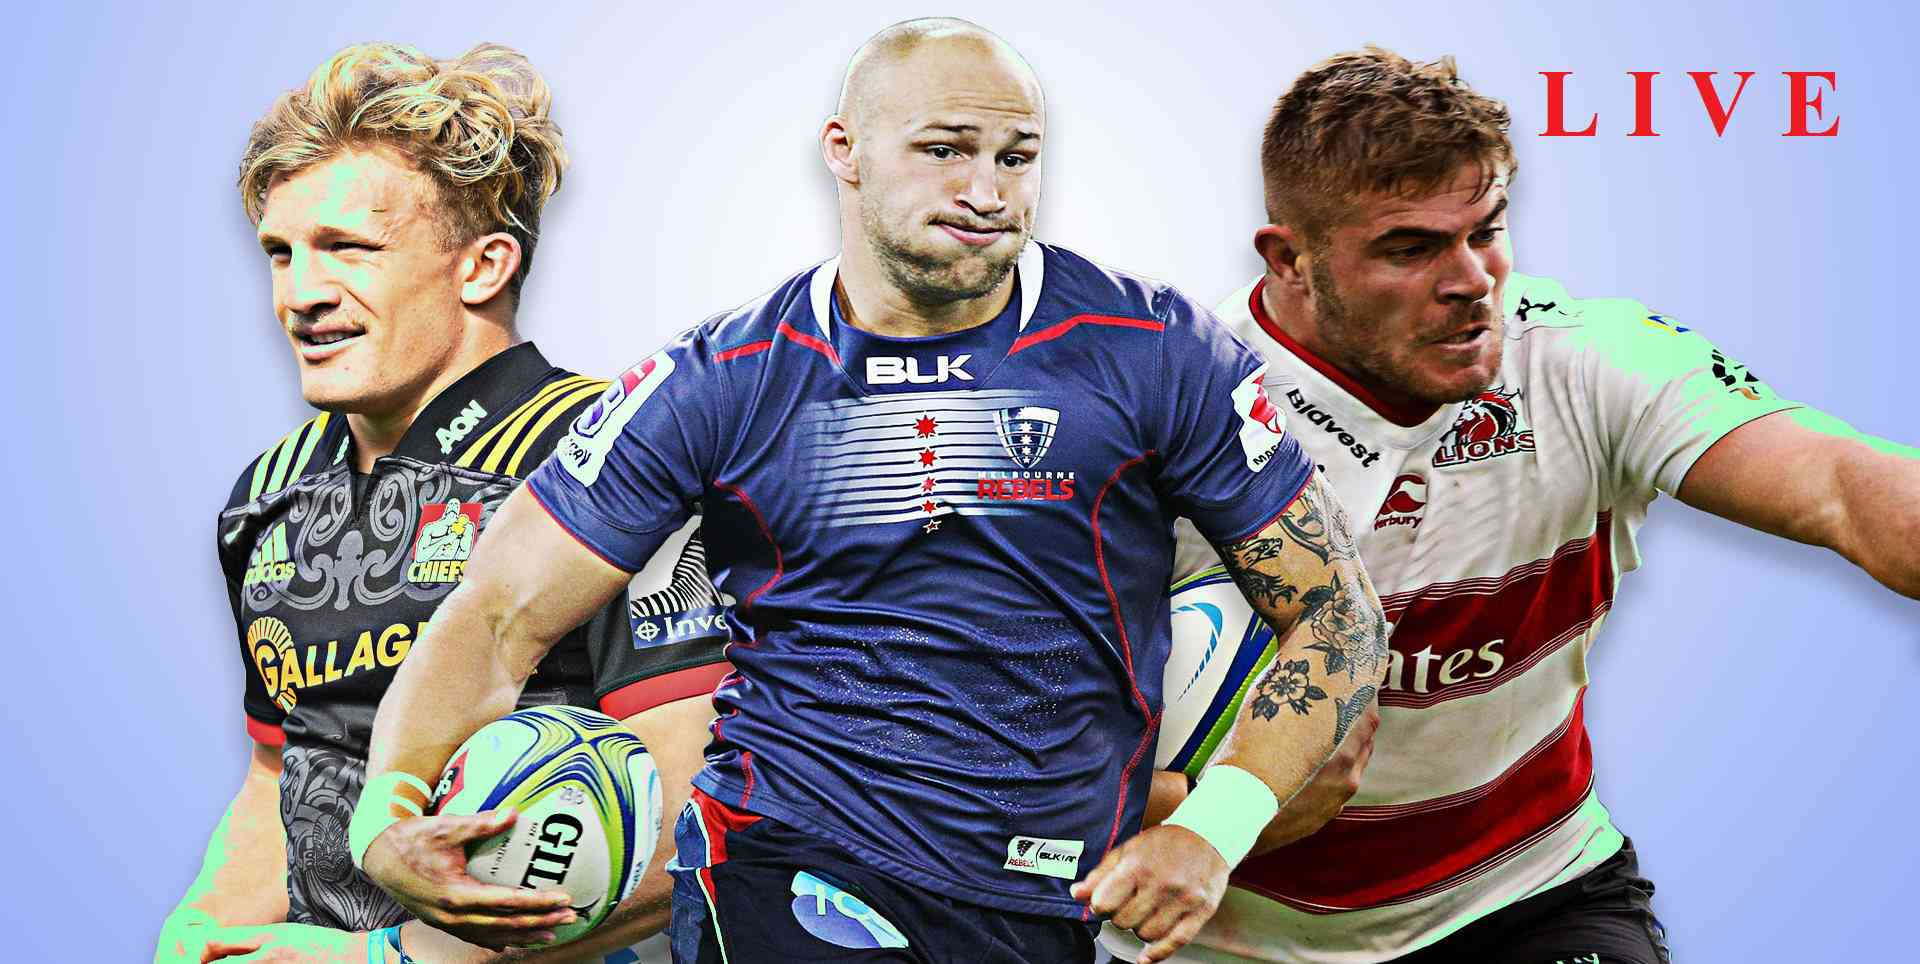 ulster-vs-clermont-auvergne-streaming